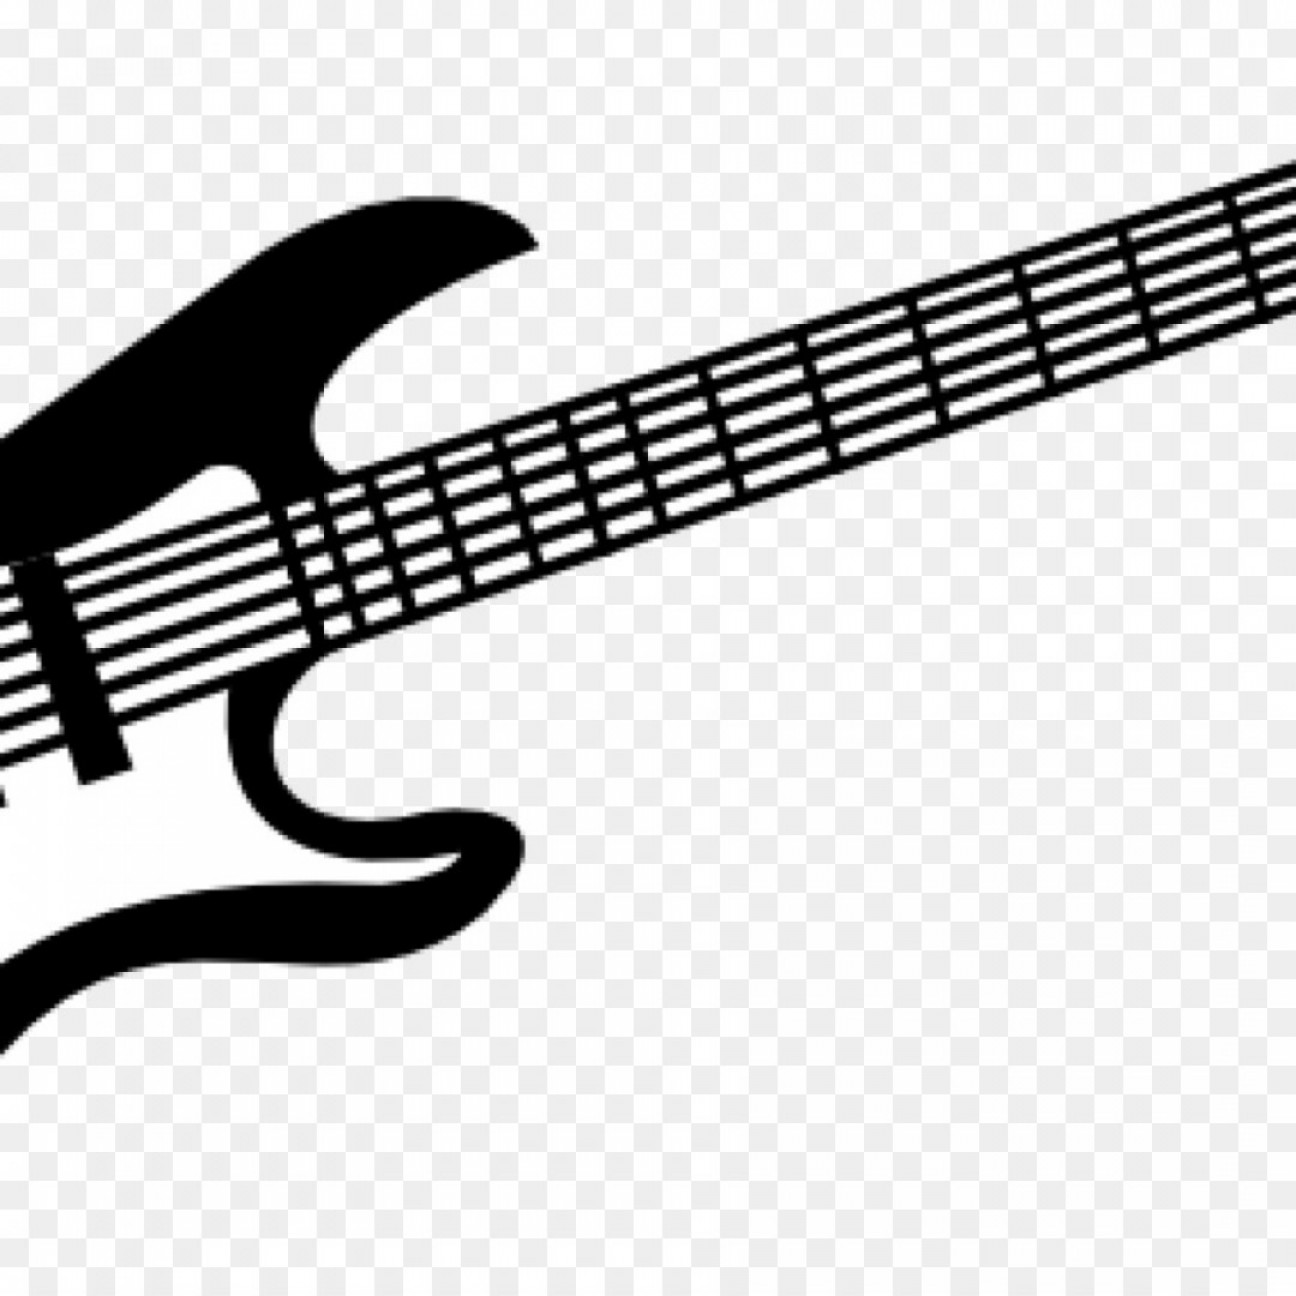 Vector Guitar Clip Art Black And White: Png Clip Art Electric Guitar Bass Guitar Vector Graphi